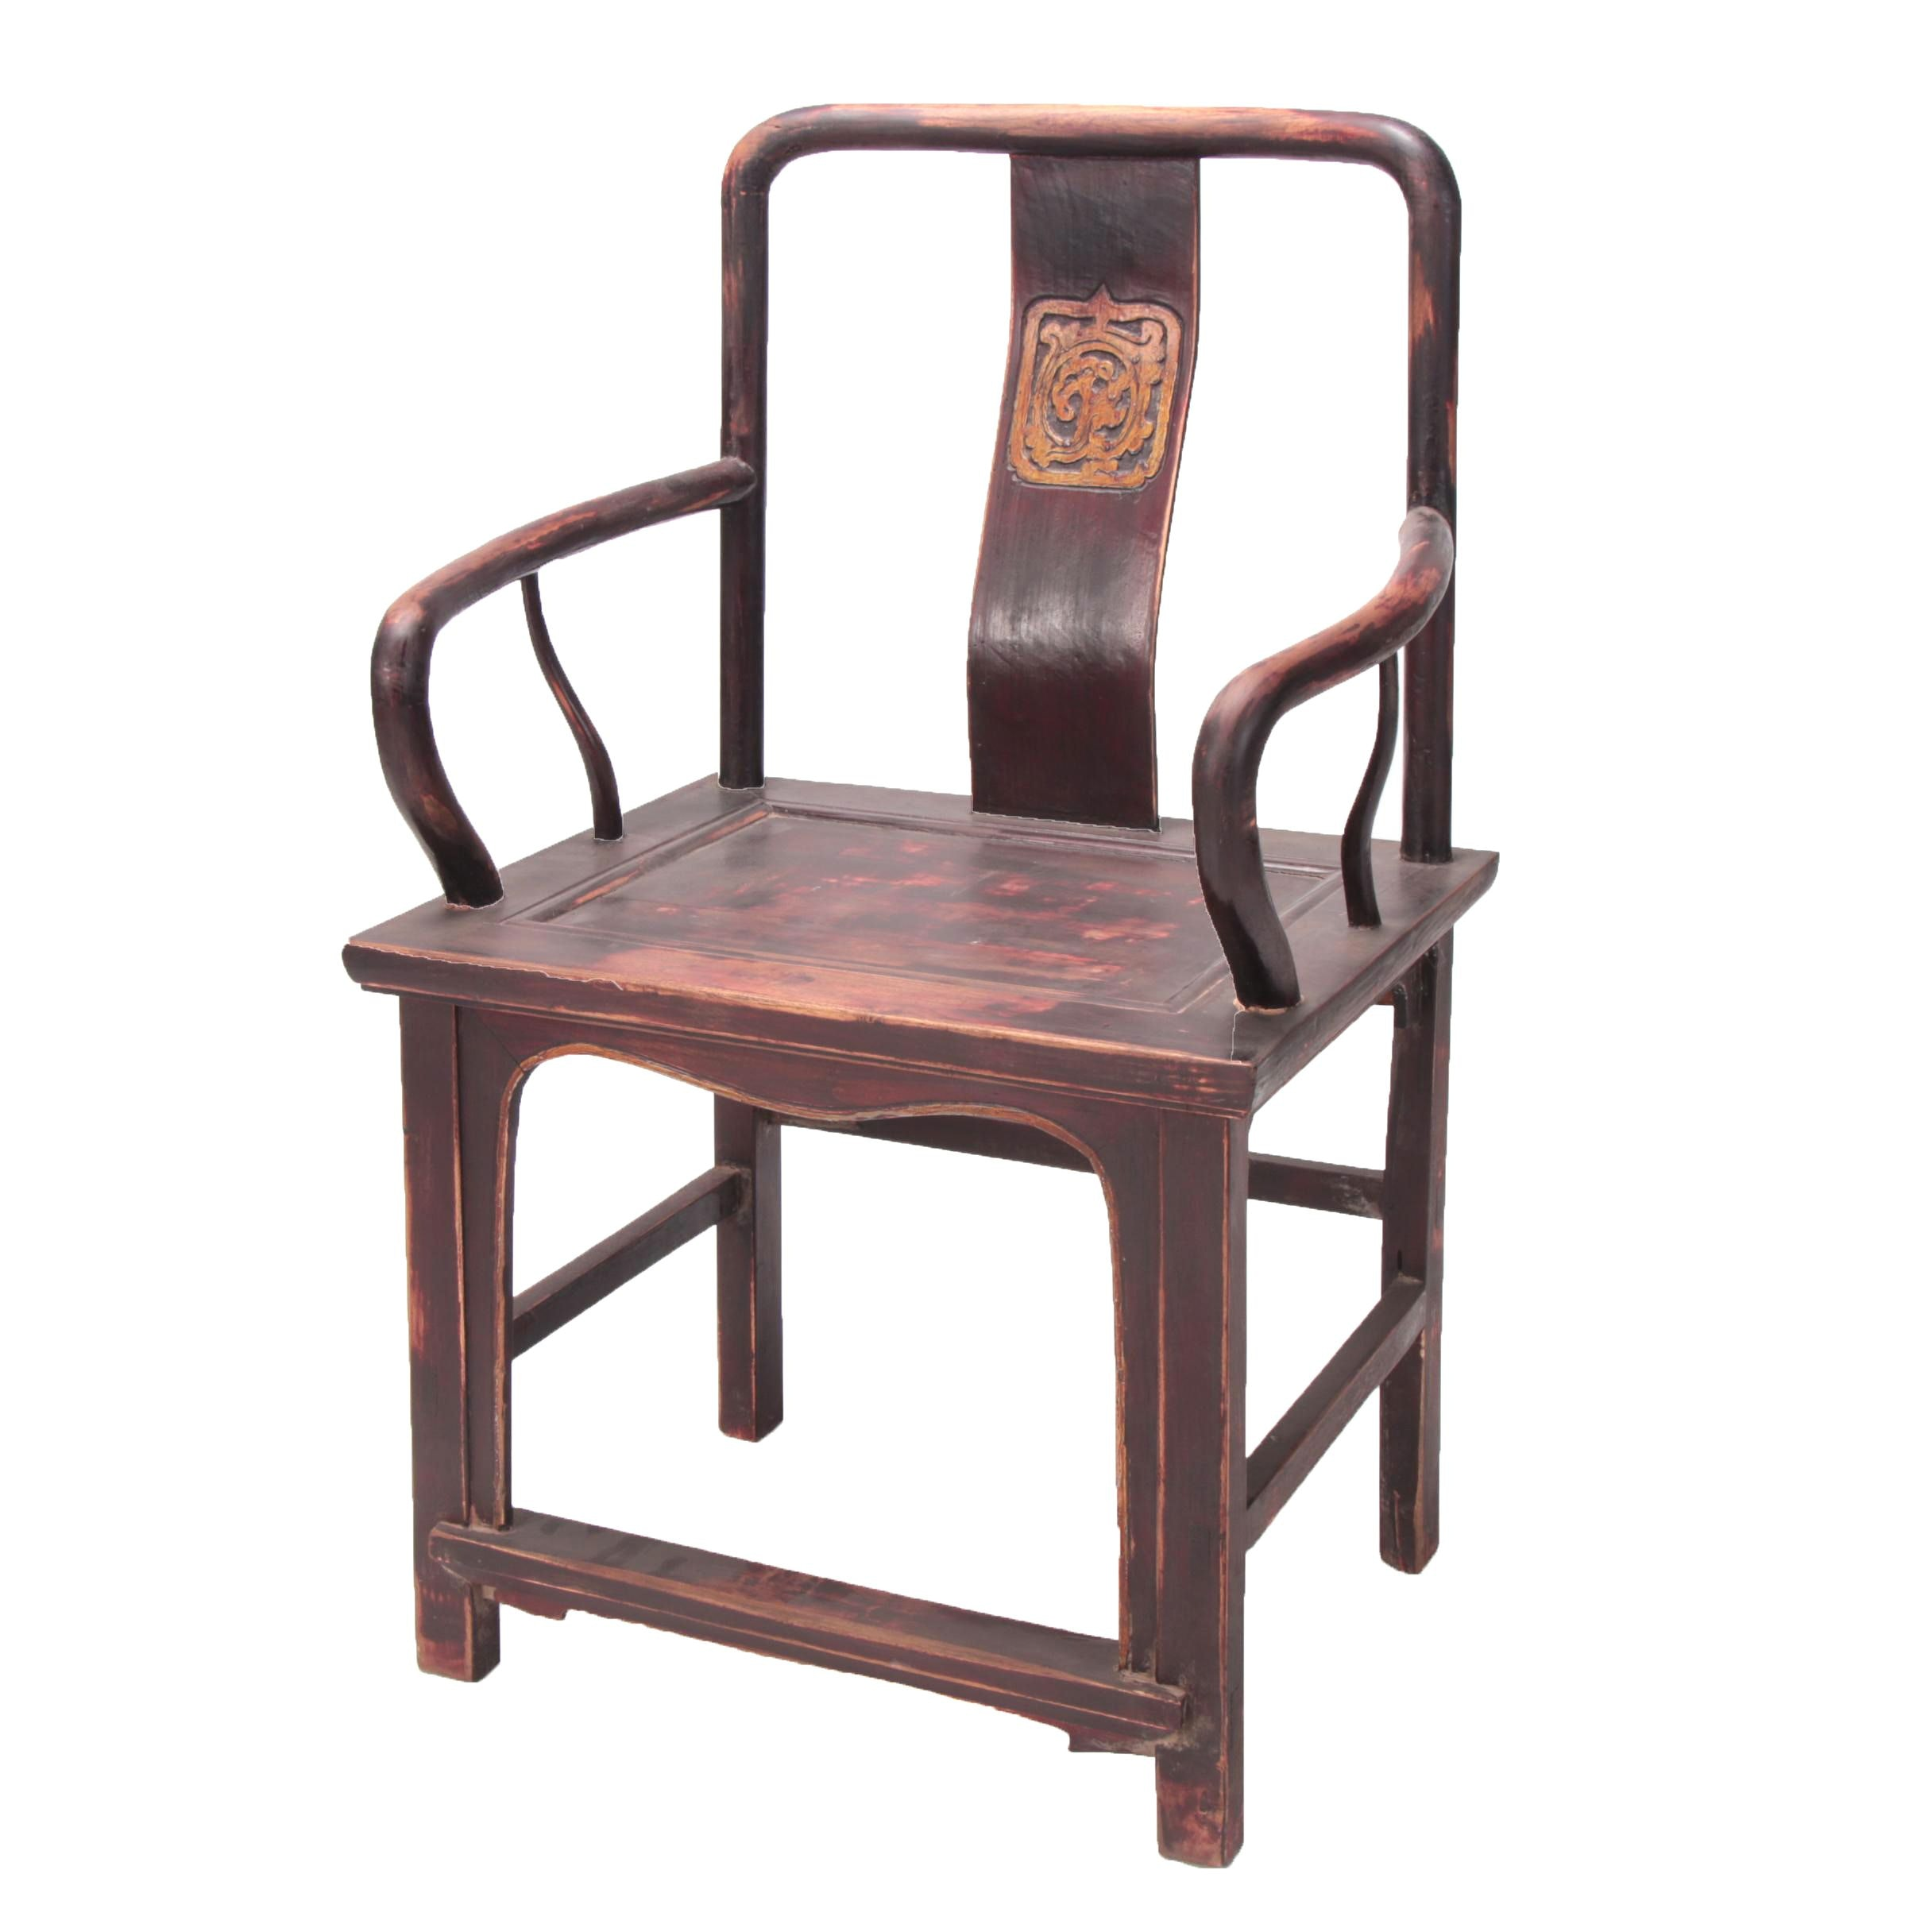 Chinese Southern Official Rosewood-Stained Wooden Open Arm Chair